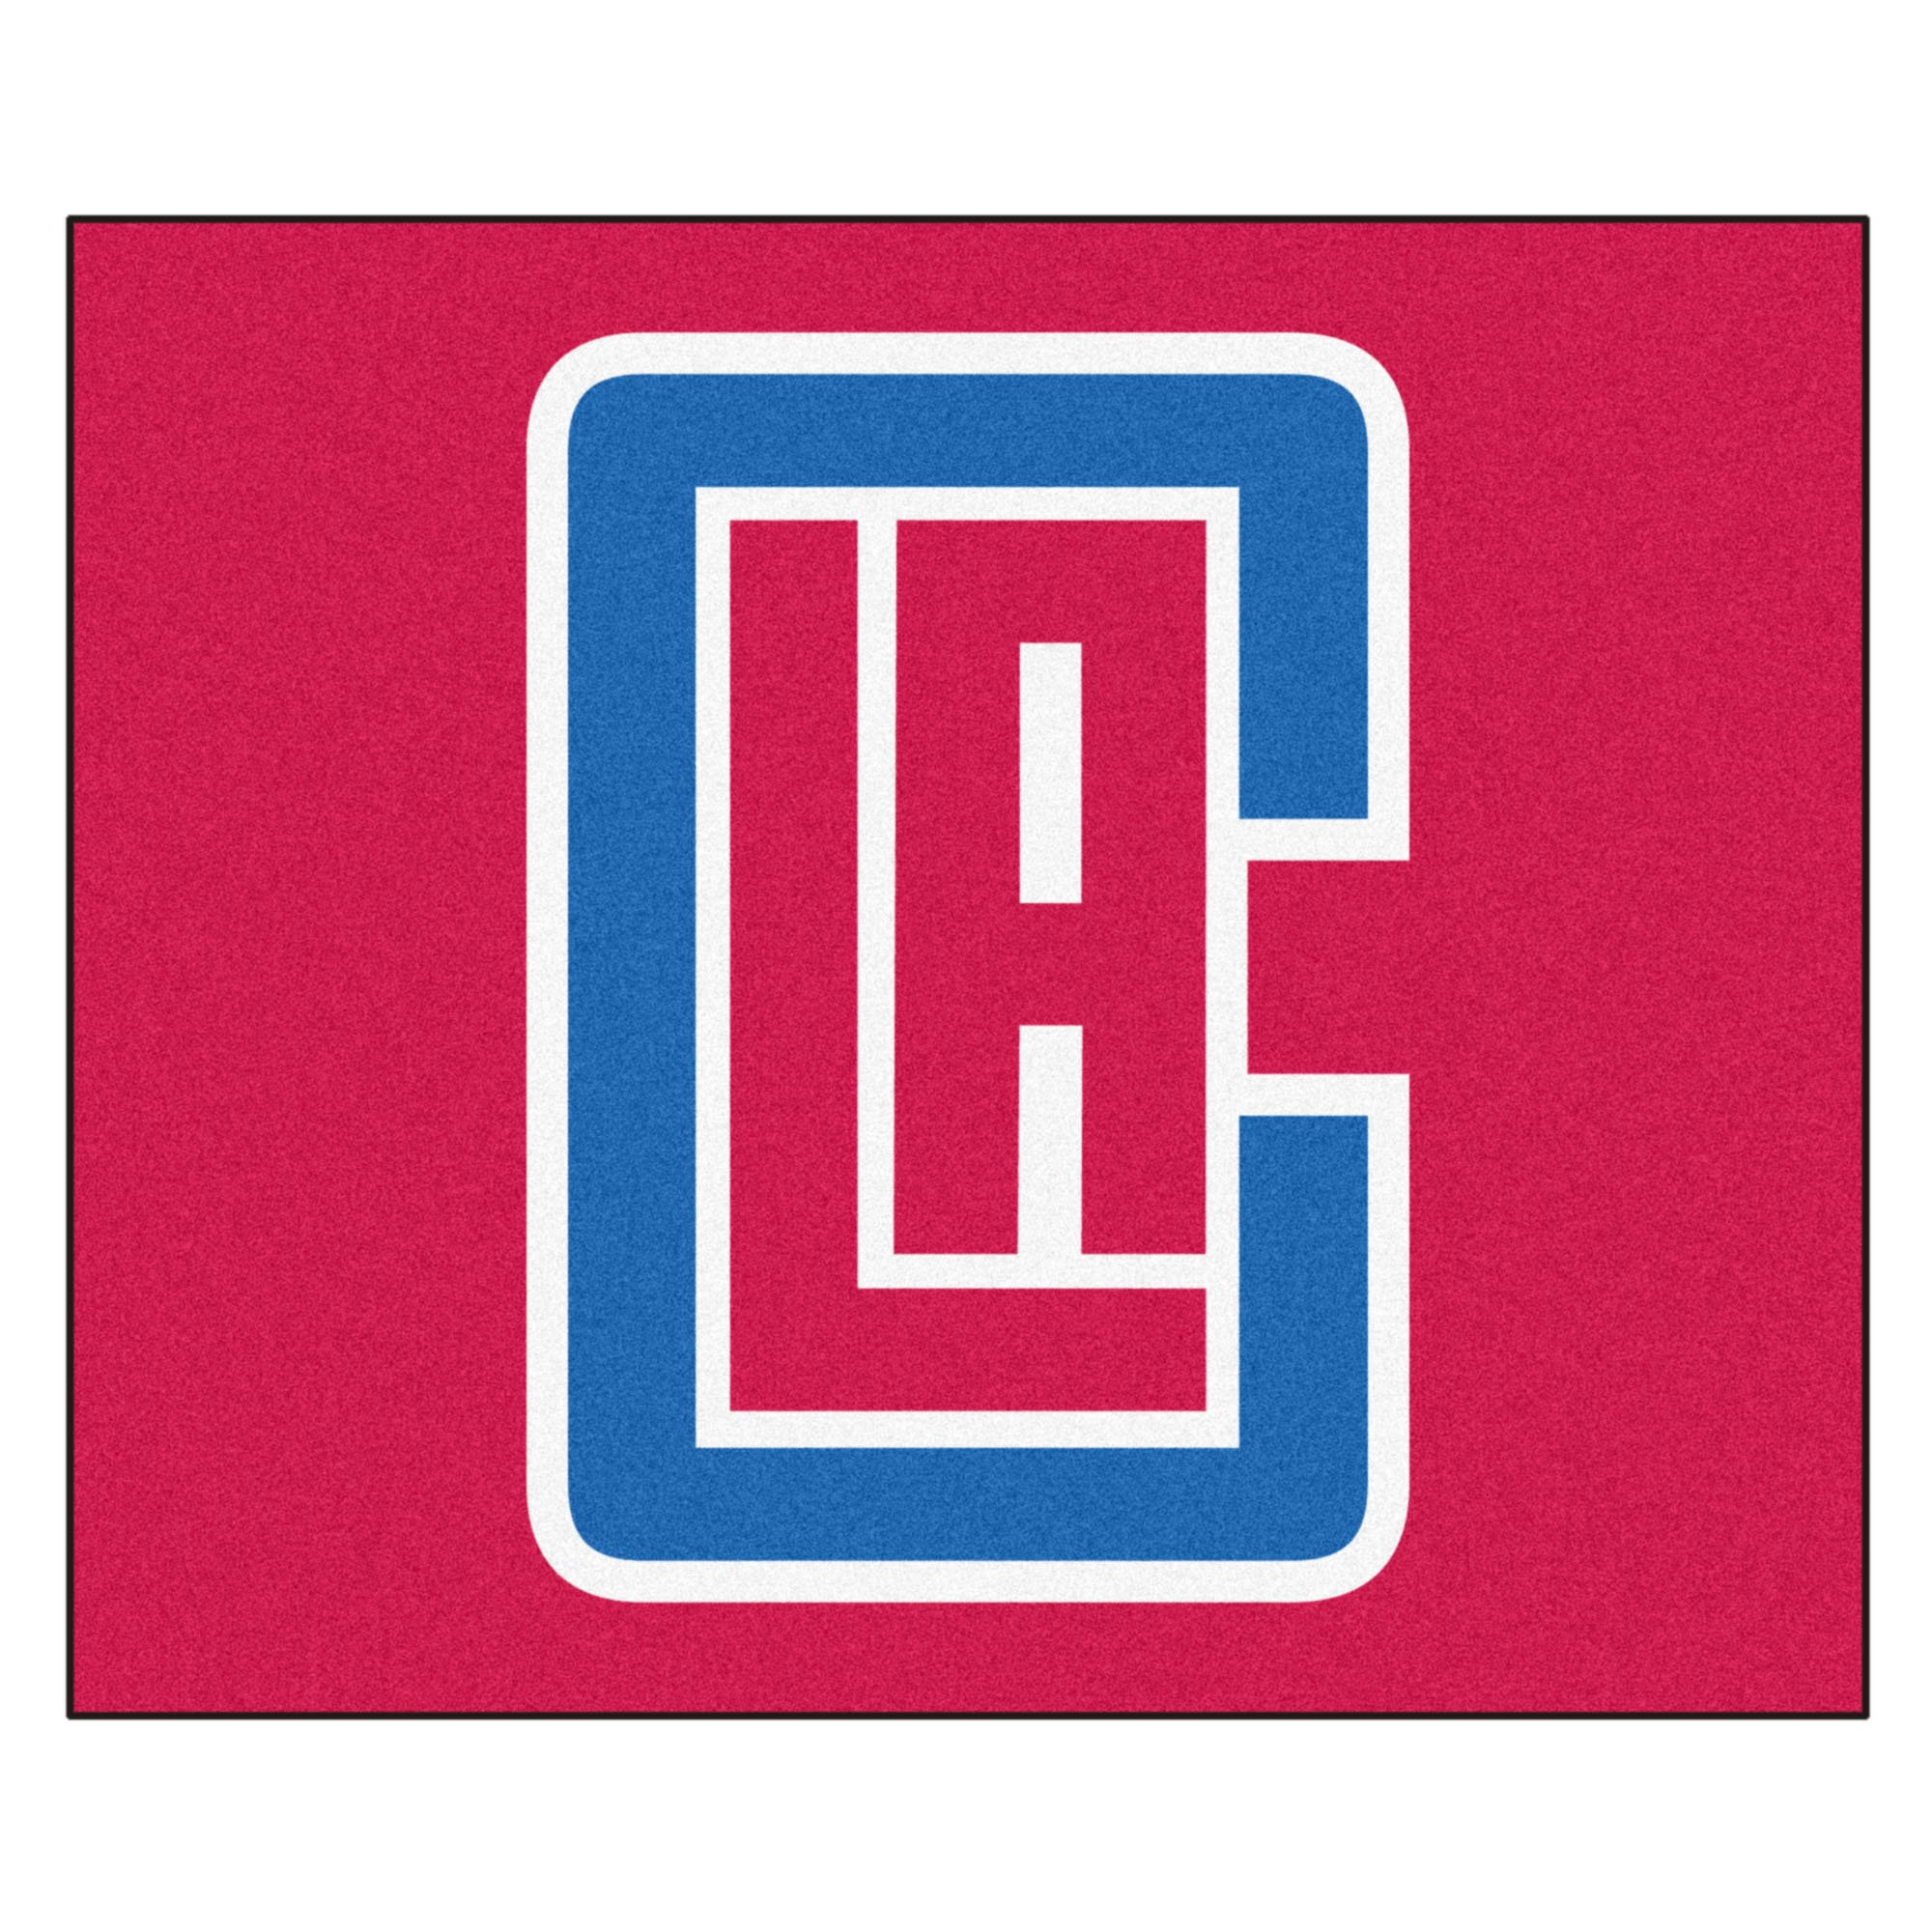 FANMATS 19447 NBA - Los Angeles Clippers Tailgater Rug , Team Color, 59.5''x71'' by Fanmats